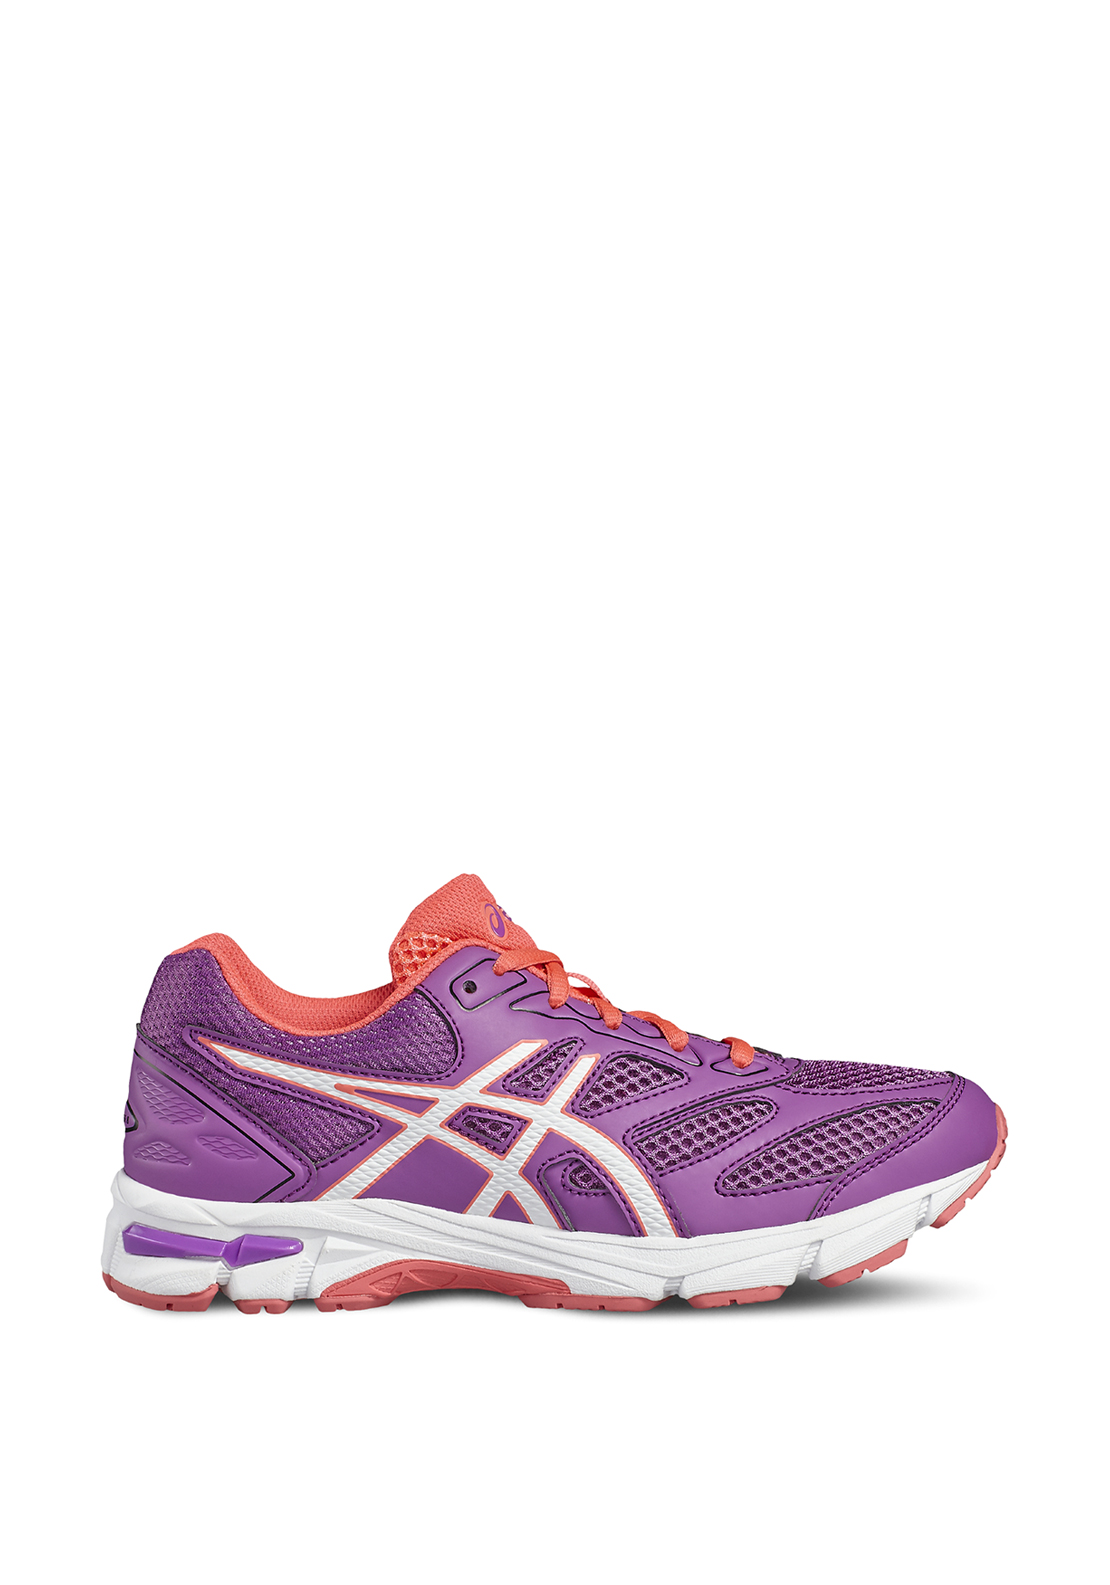 Asics Girls Gel Pulse 8 Runners, Purple